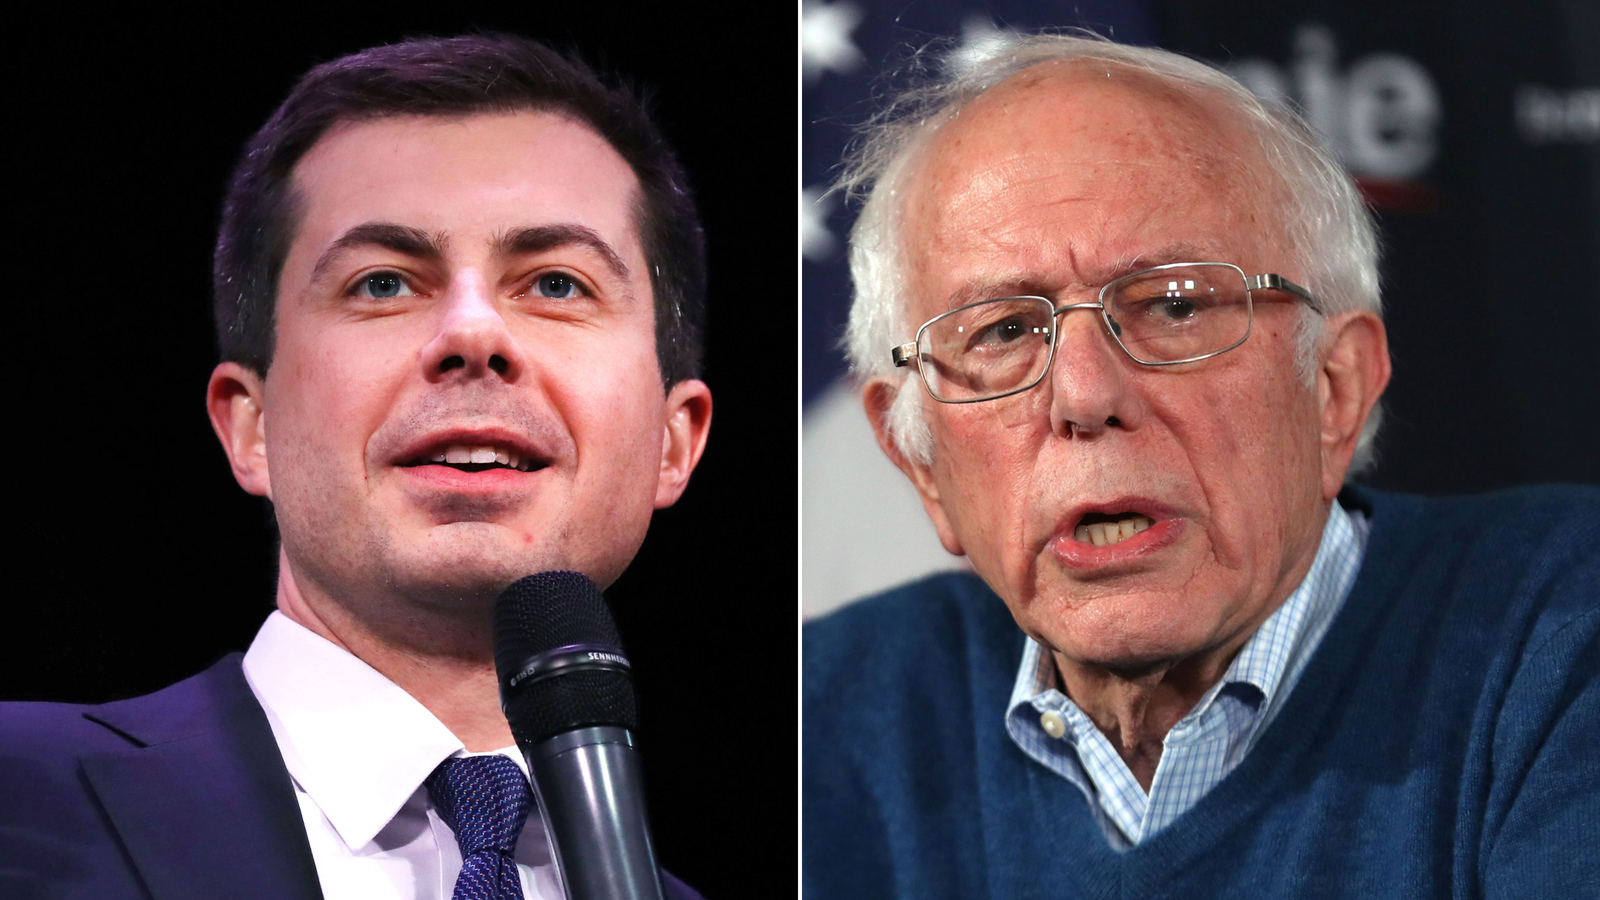 Buttigieg maintains narrow lead over Sanders in Iowa after recanvass